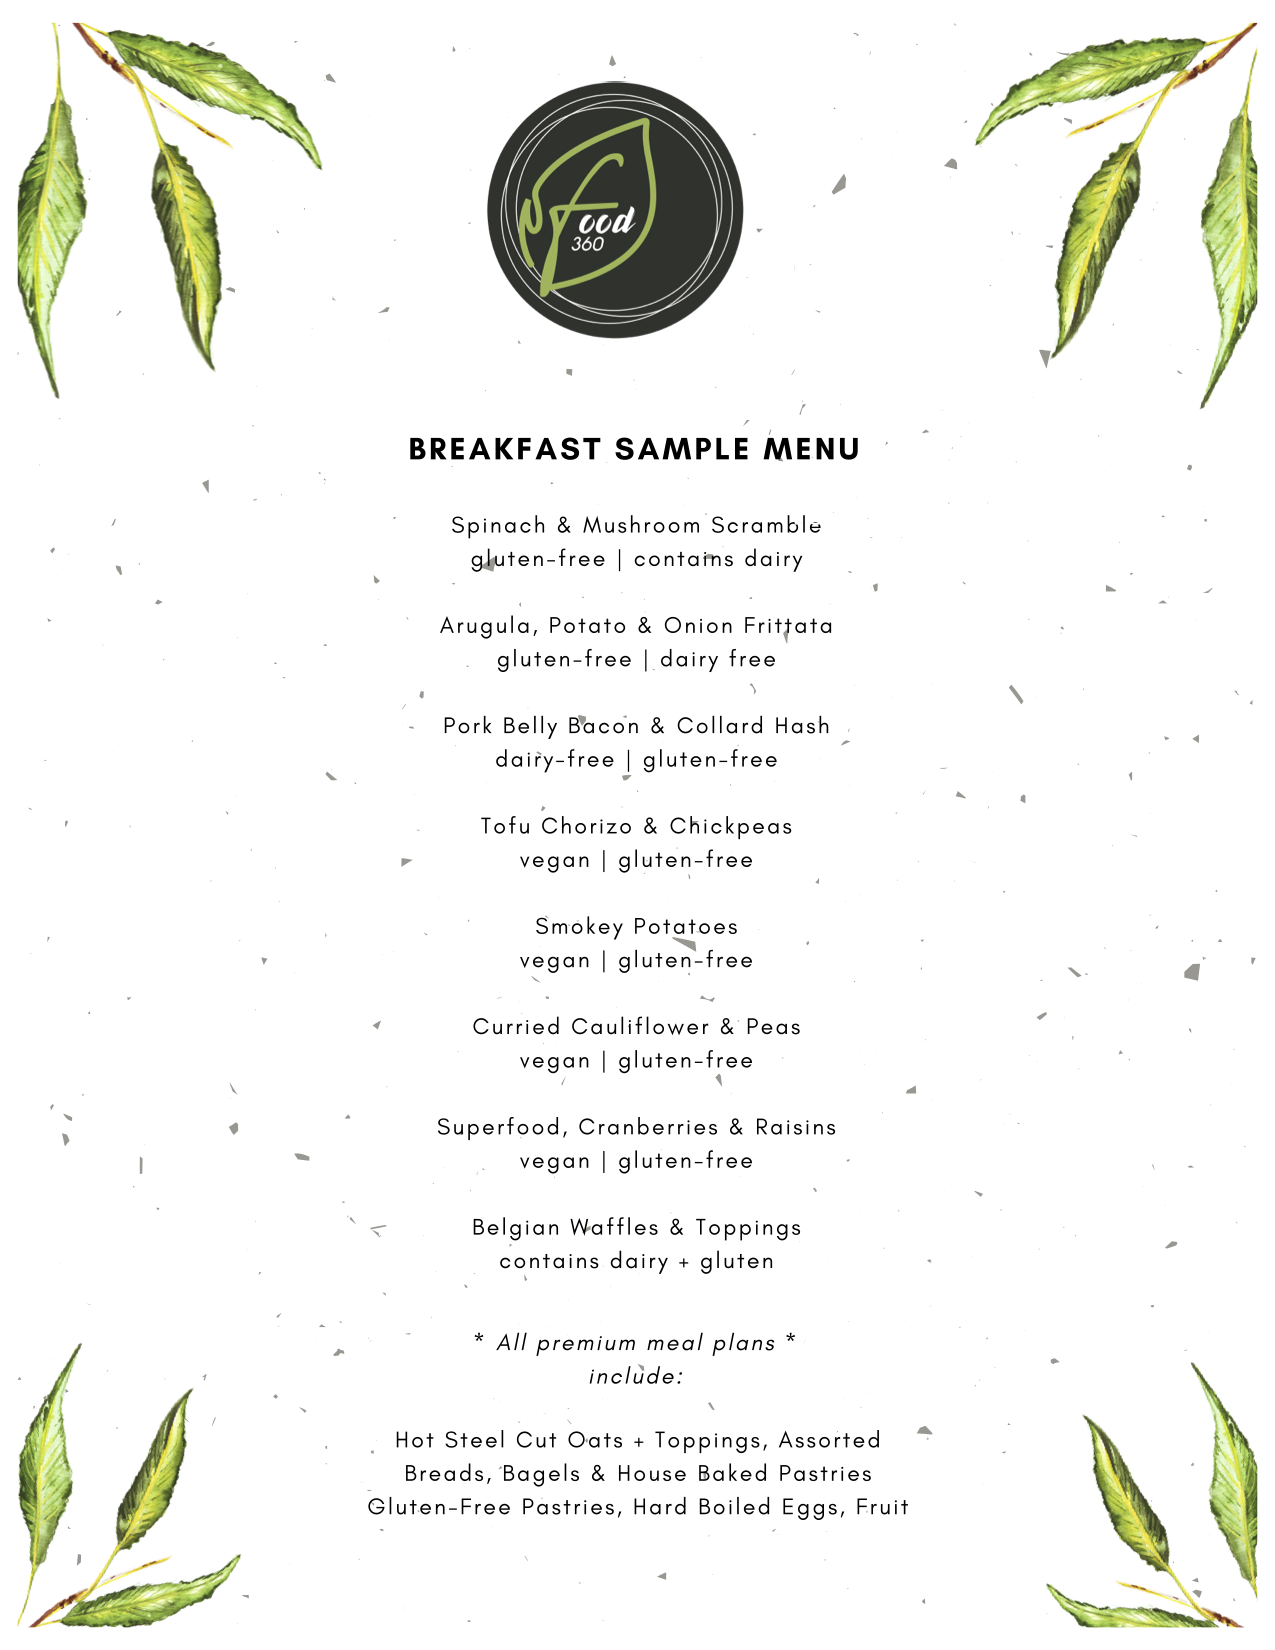 epic breakfast options - imagine warm freshly baked pastries and a hot breakfast waiting for you. yeap, it could happen.